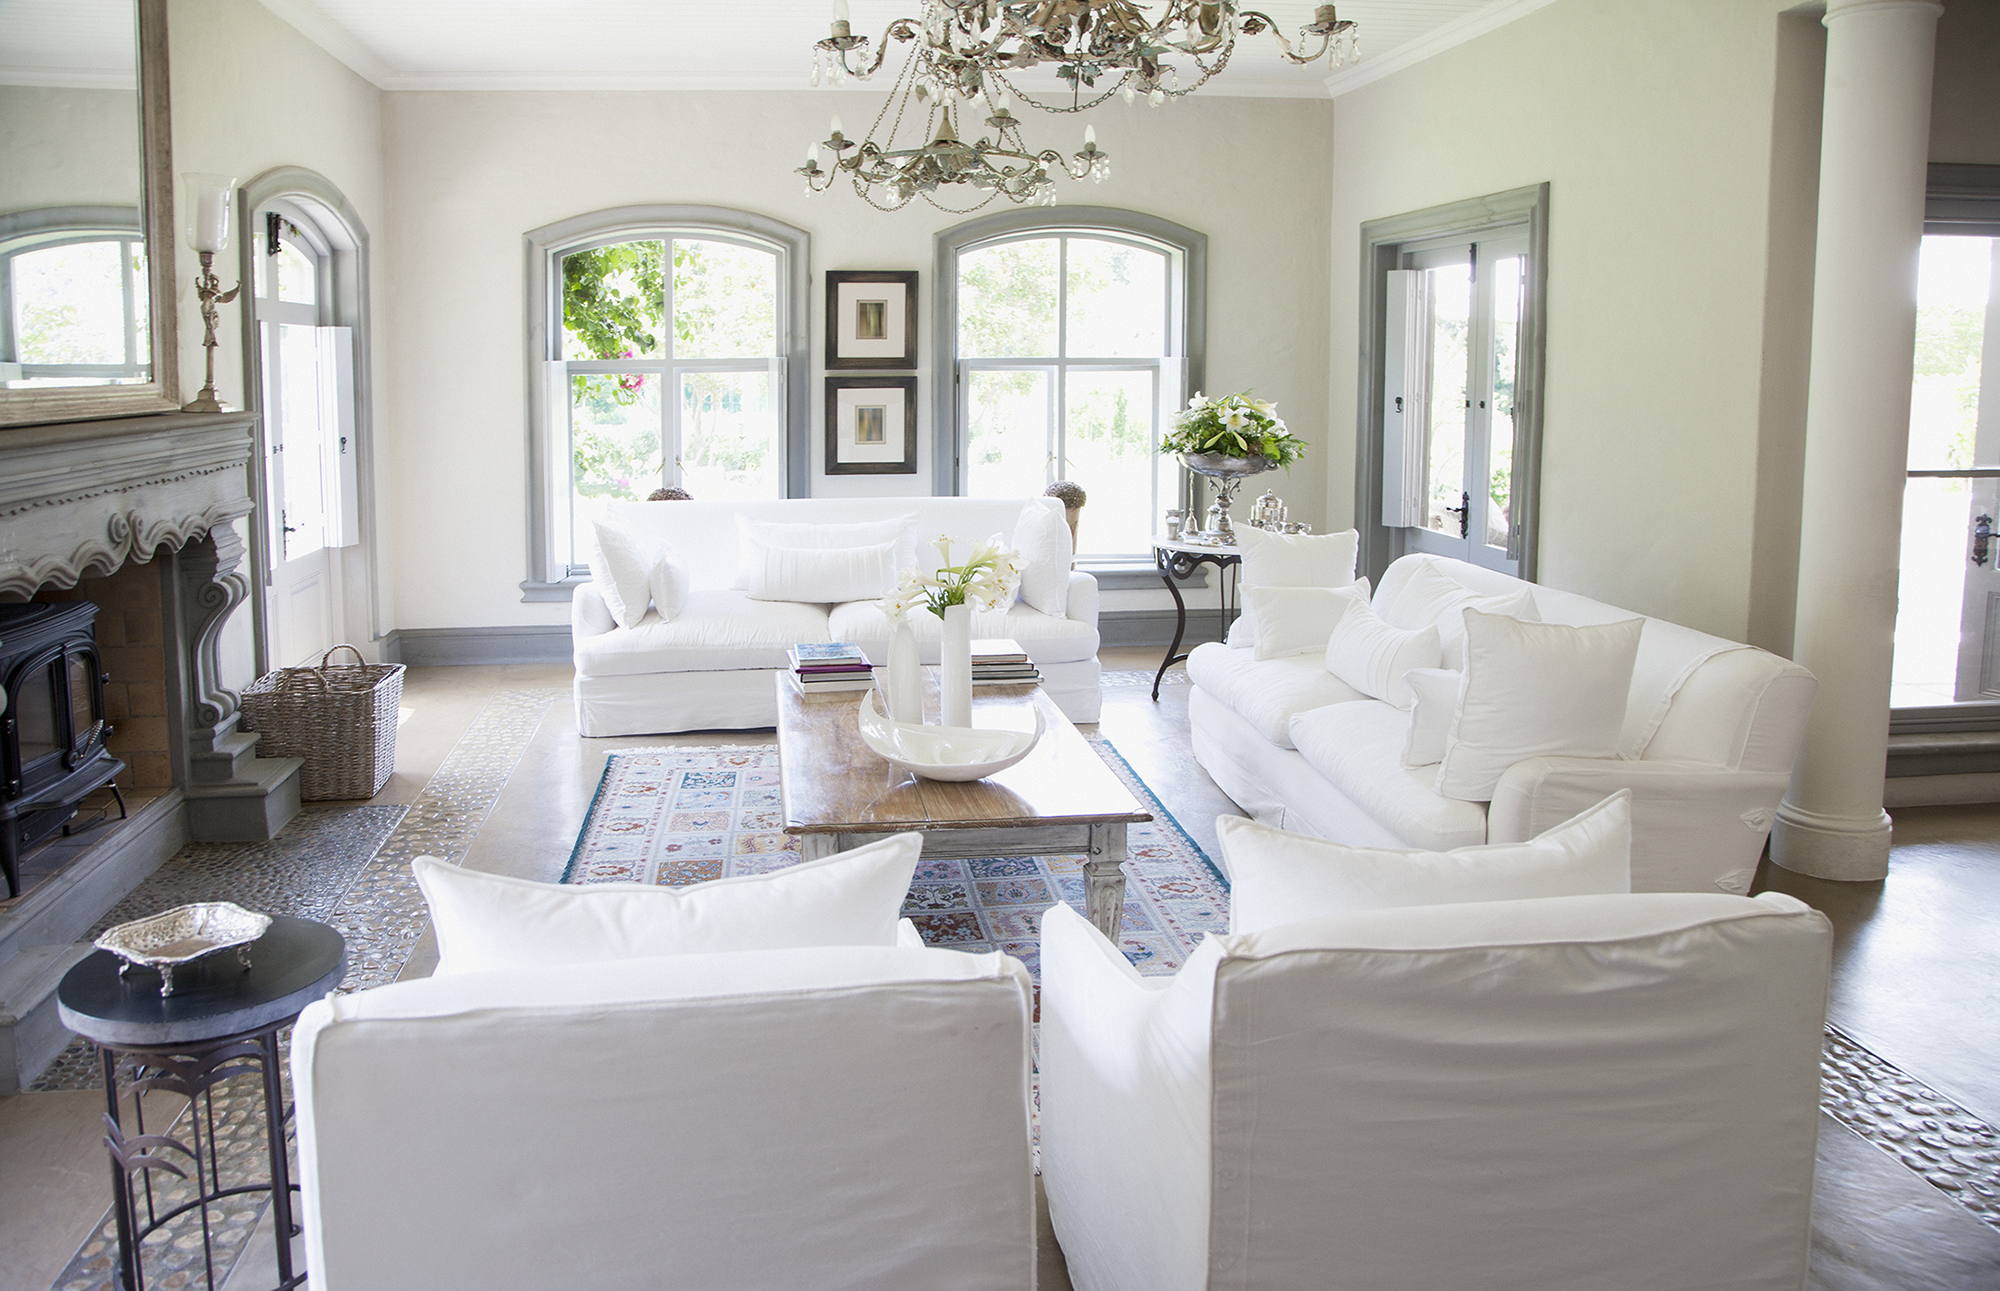 Prepping a Home for Sale: Simple Staging Tips for Inside and Out